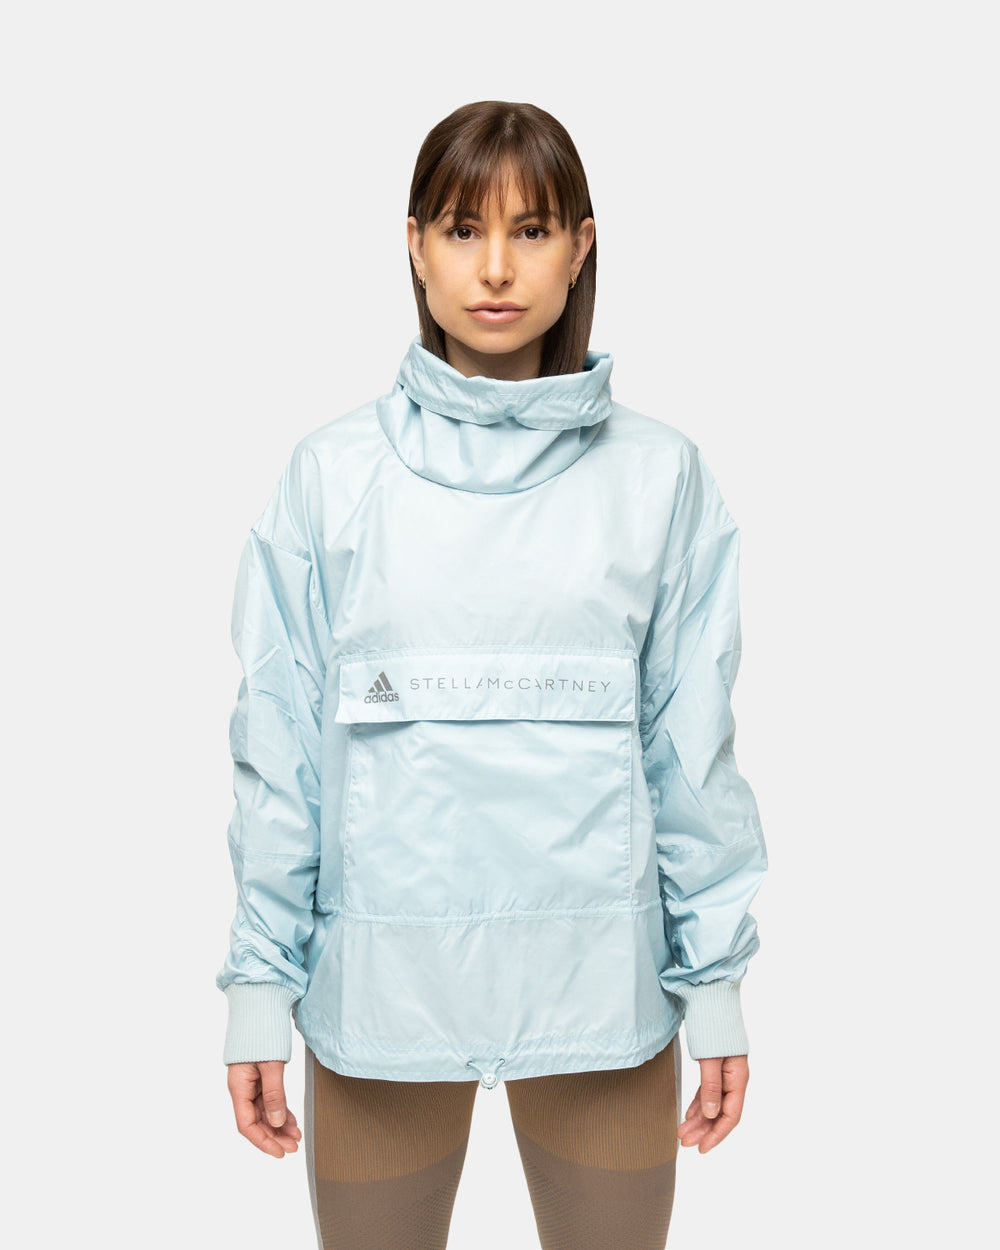 adidas - Women's adidas by Stella McCartney Tech Sweatshirt (Sterling Blue)